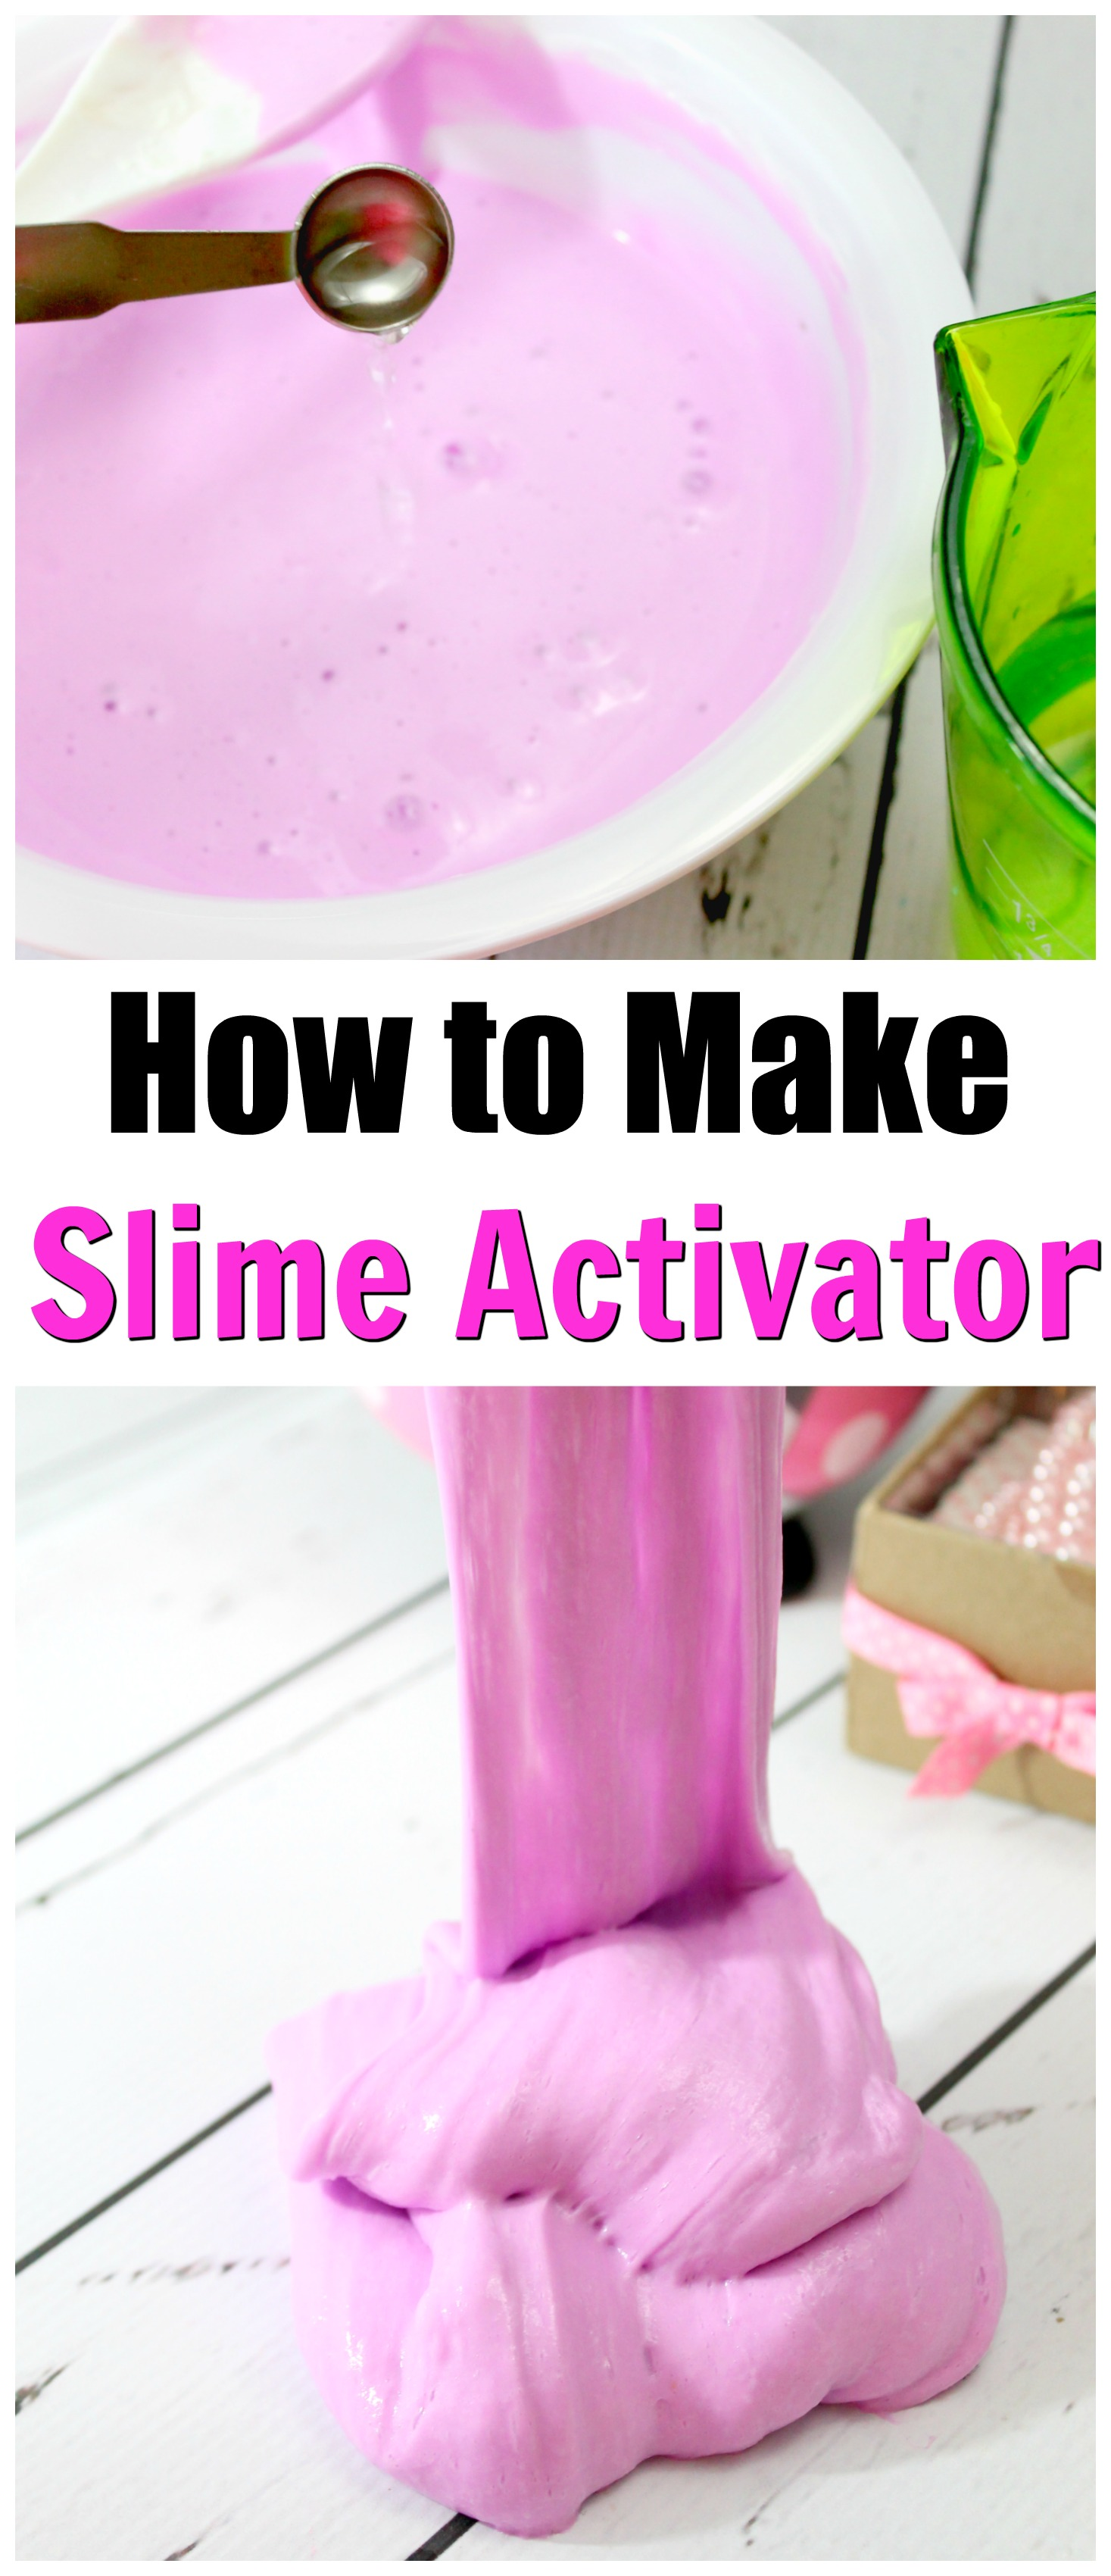 How To Make Slime Activator With Laundry Detergent | Howsto.Co - photo#13